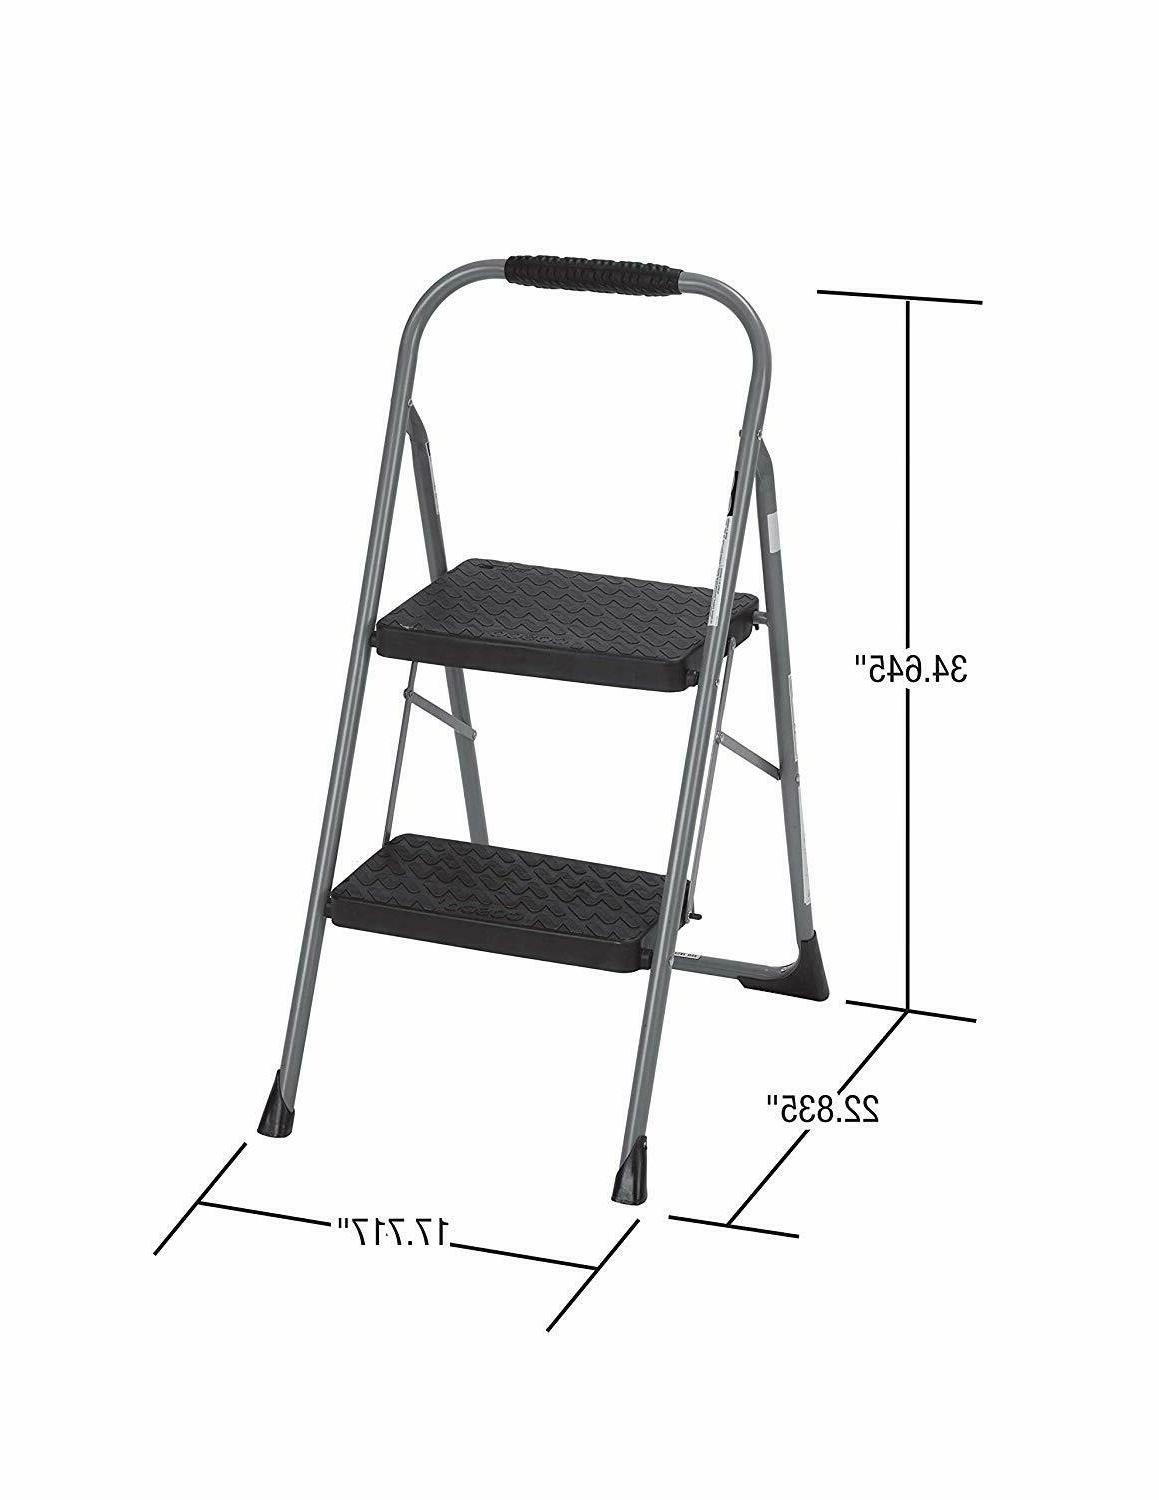 Cosco Two Step Big Step Folding Stool Rubber Hand Grip,